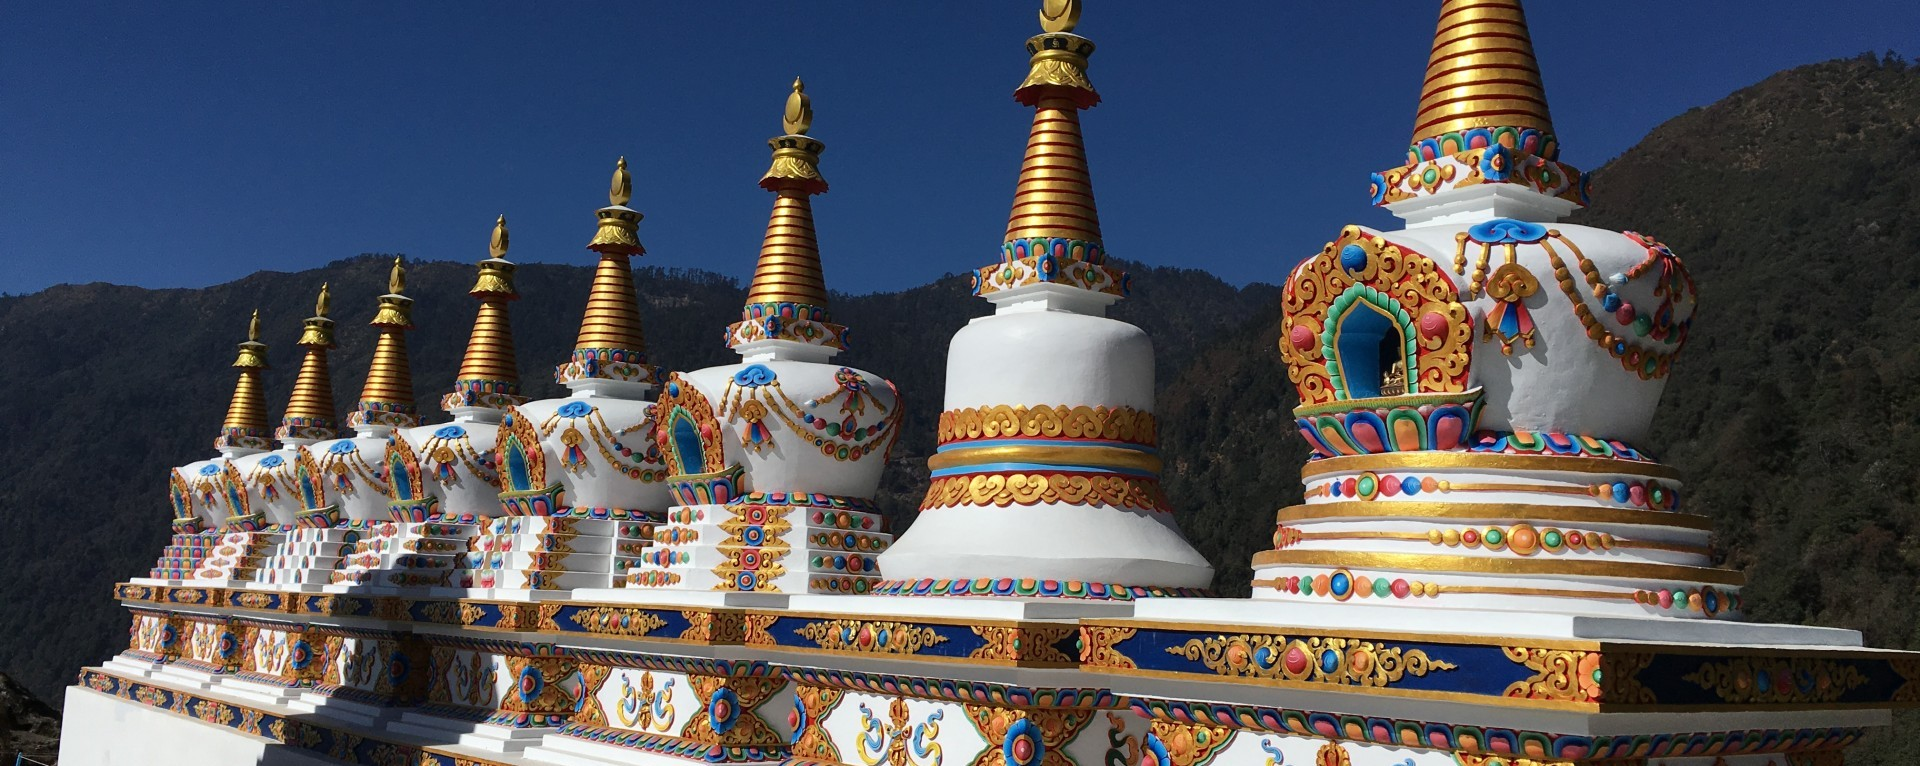 The Stupa at the Buddhist monastery in Solukhumbu.